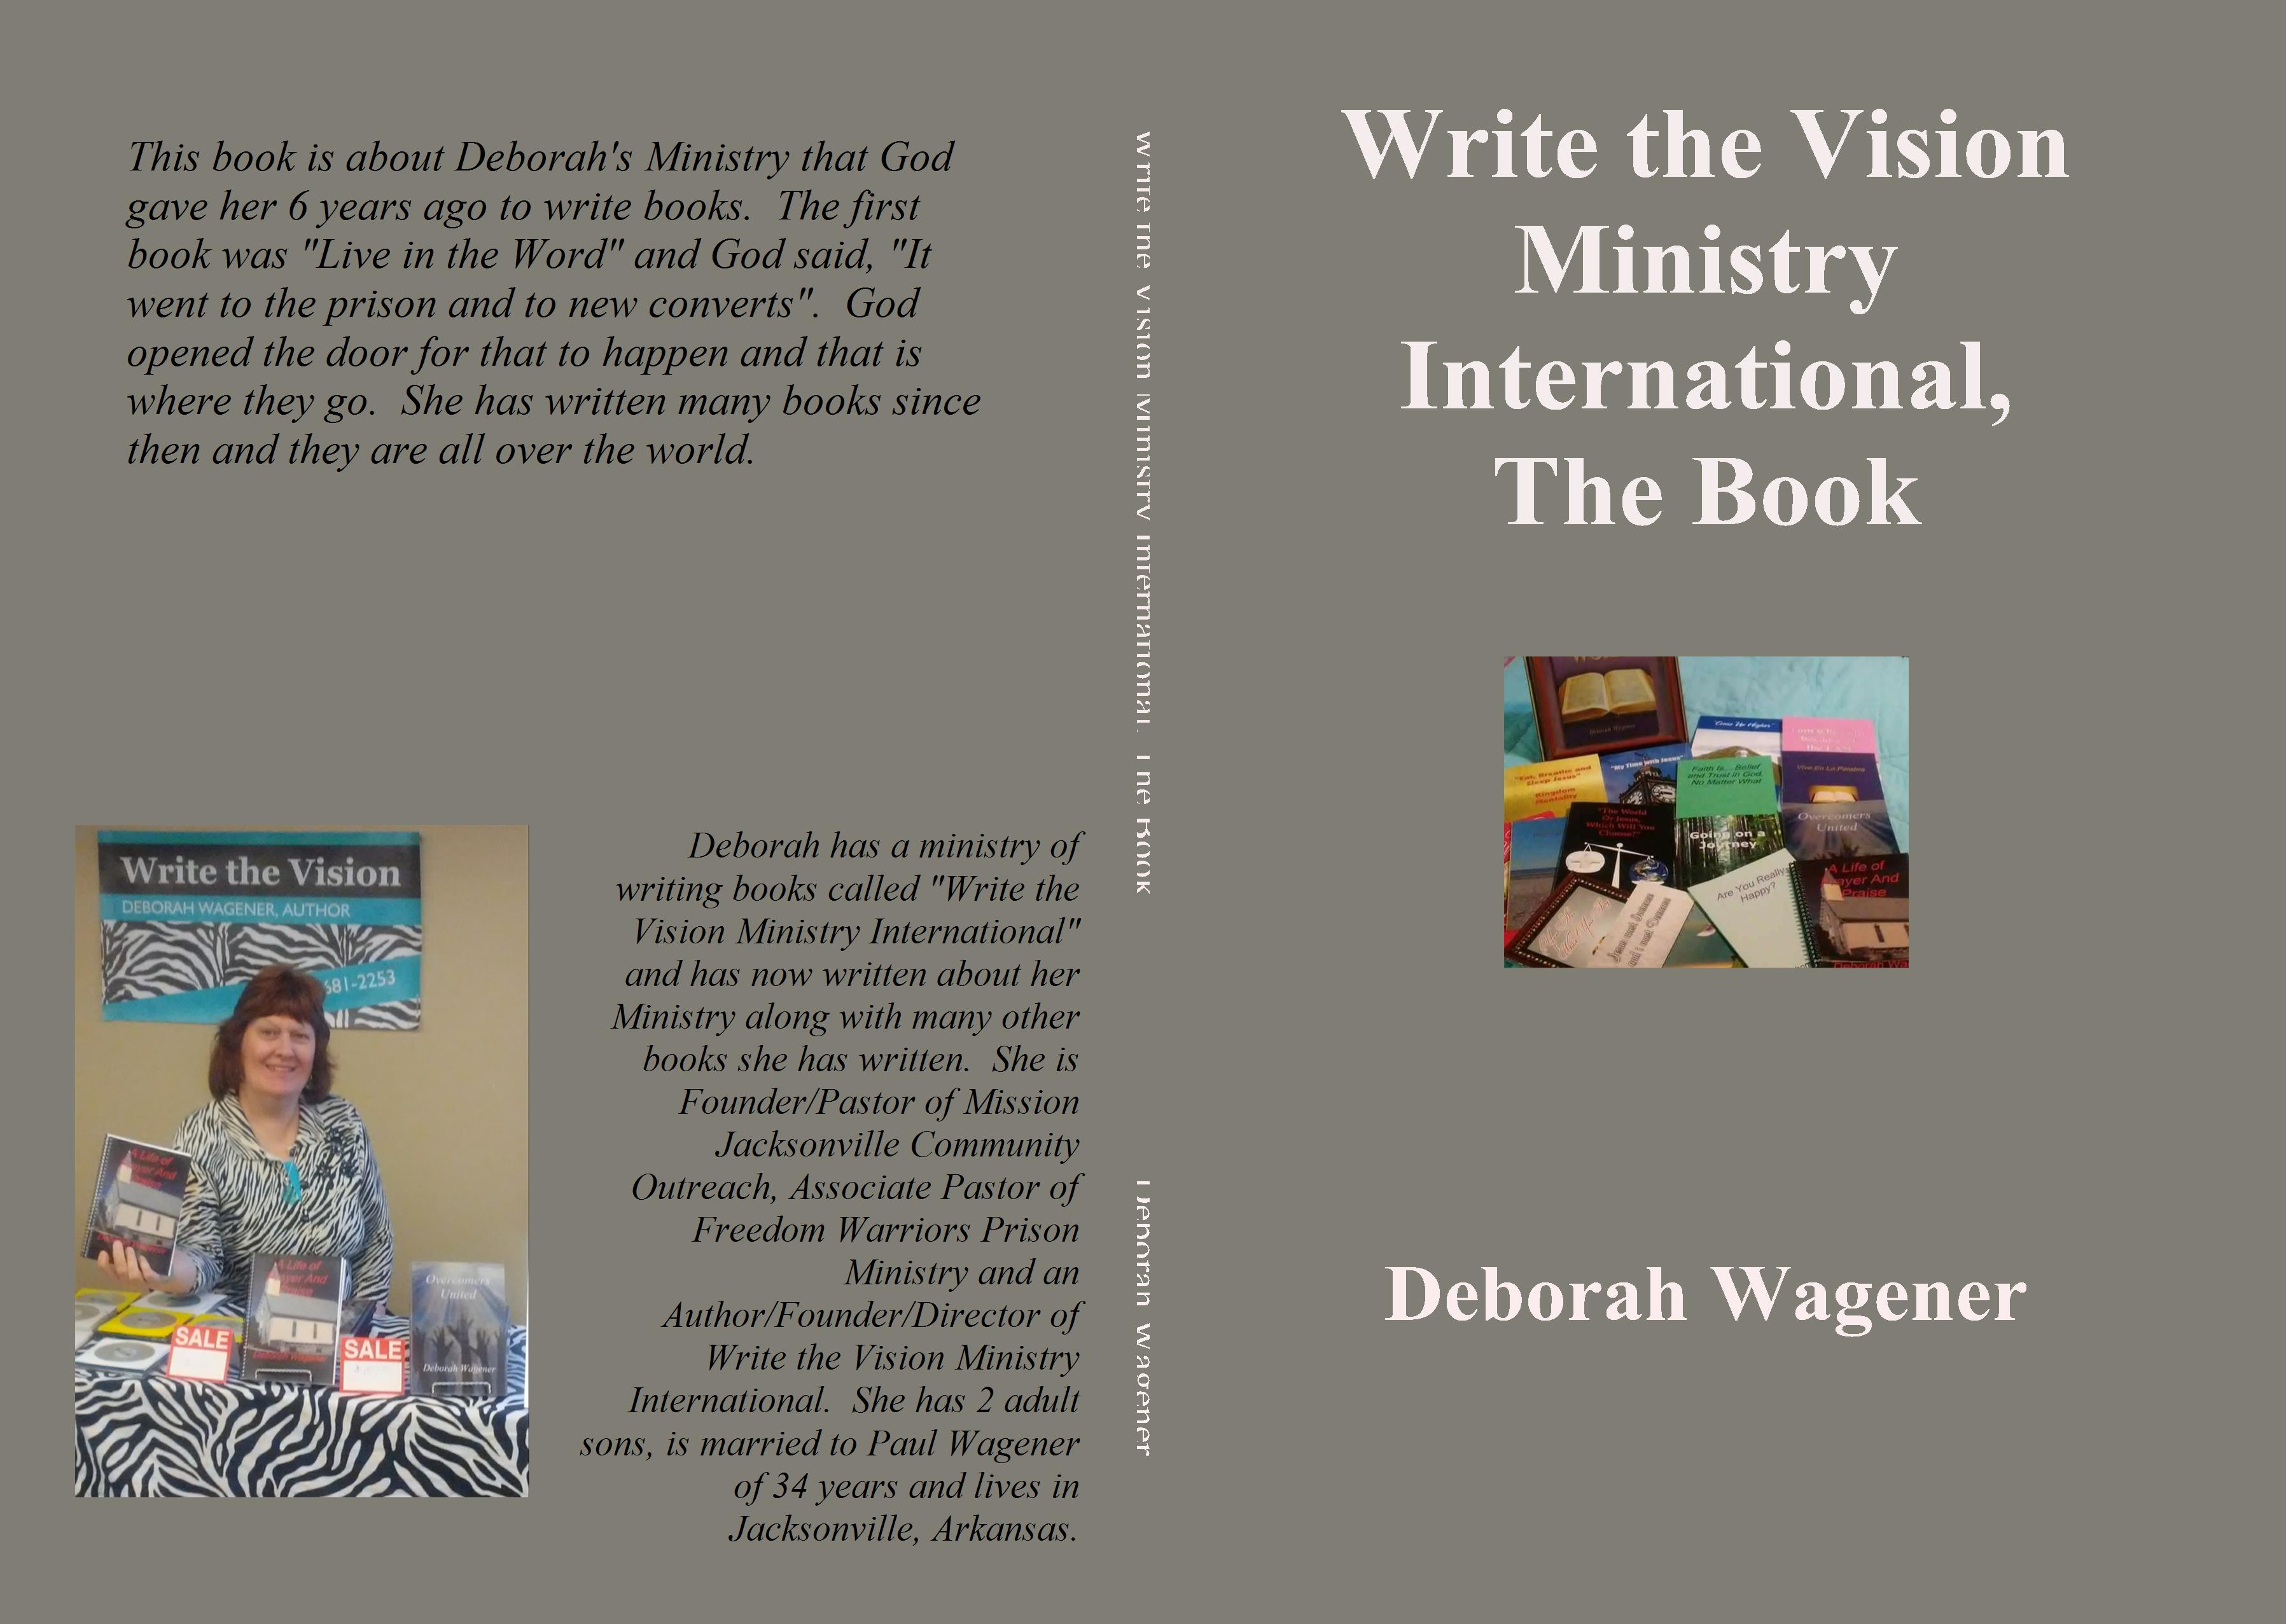 Write the Vision Ministry International, The Book cover image